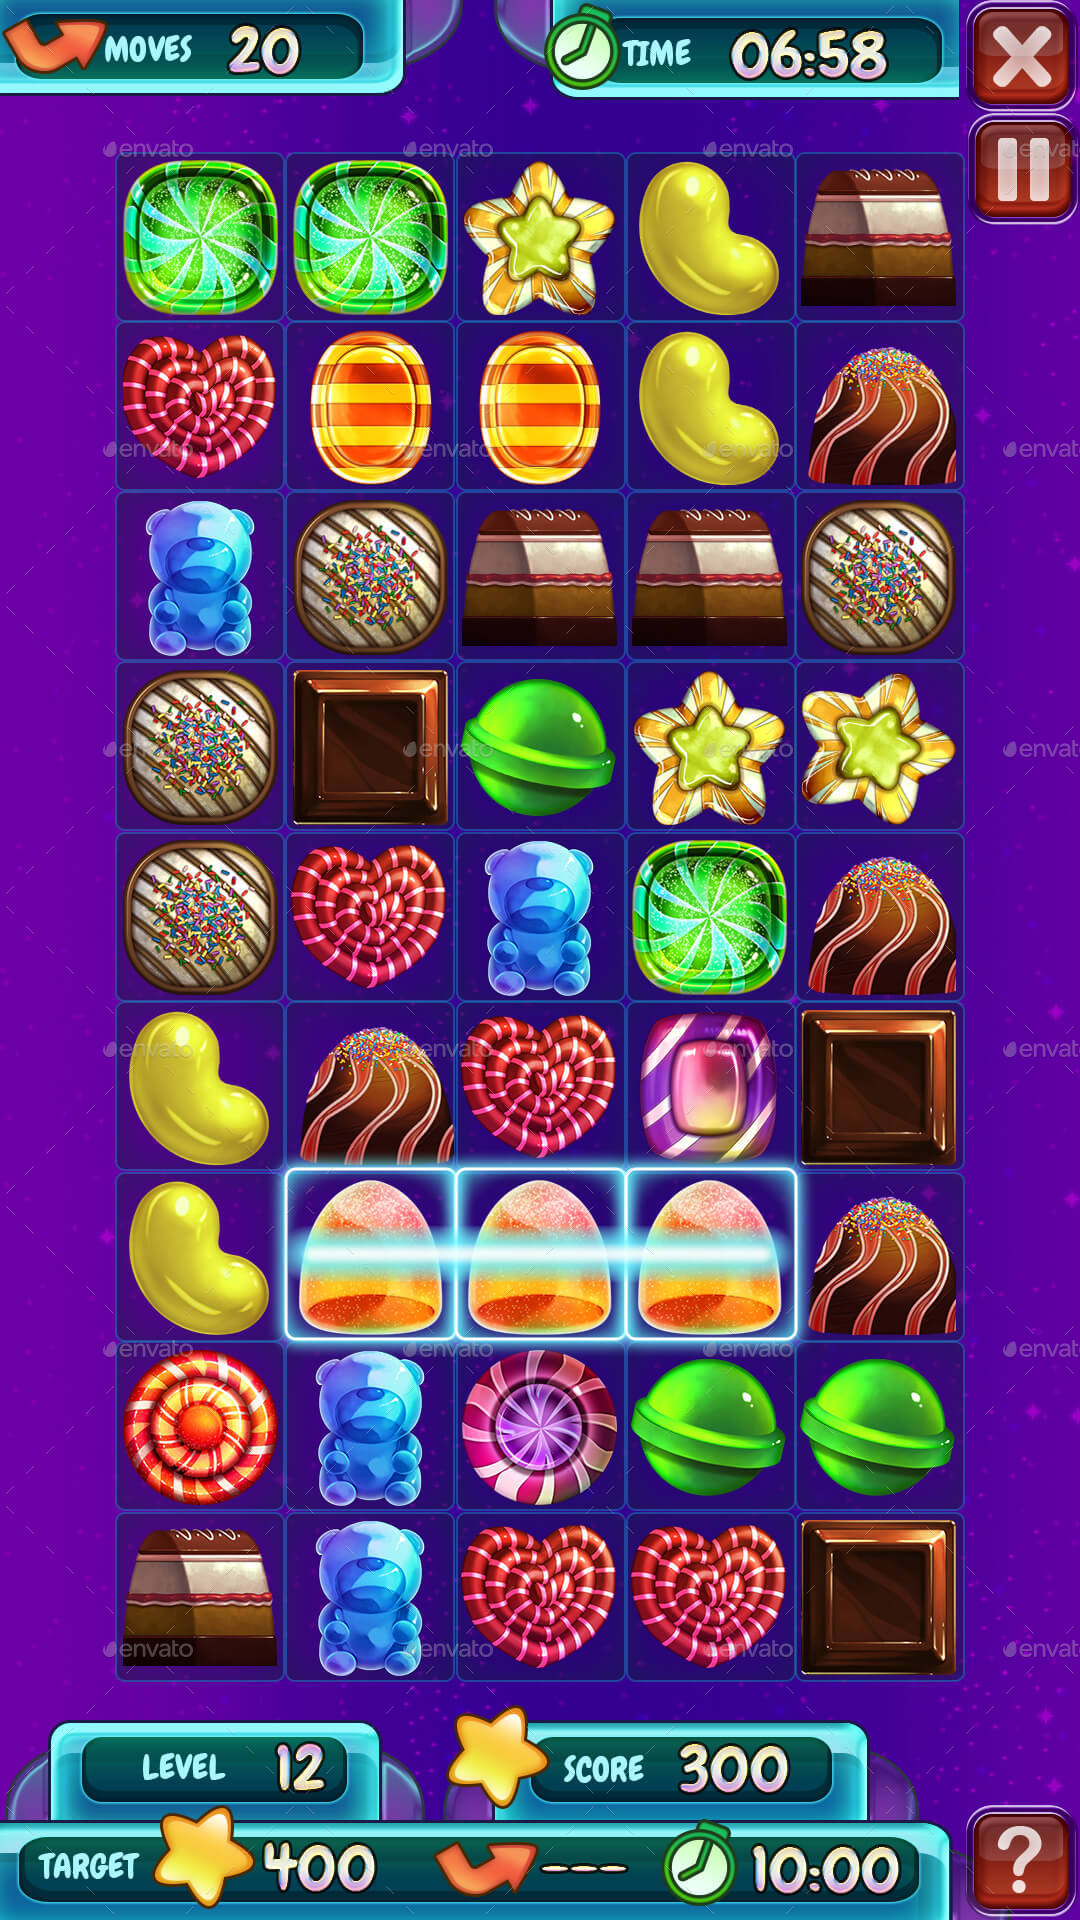 match 3 candy puzzle game assets with gui kit by space gecko